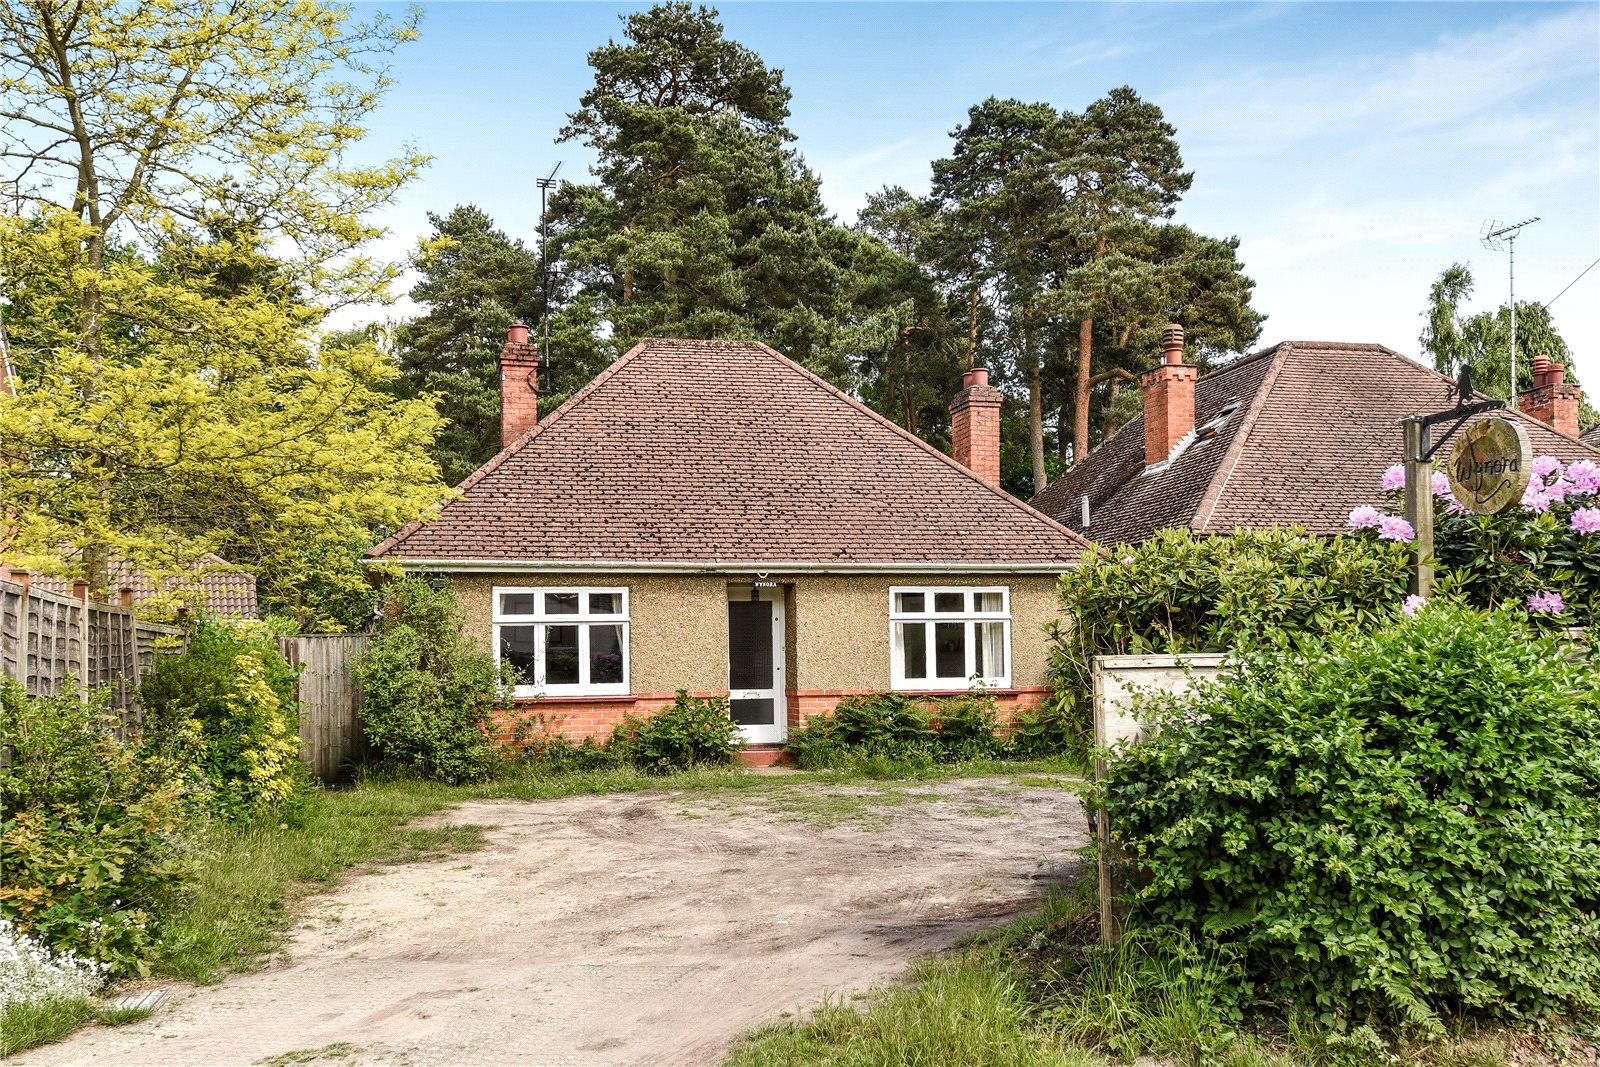 2 Bedrooms Detached Bungalow for sale in Soldiers Rise, Finchampstead, Wokingham, Berkshire, RG45